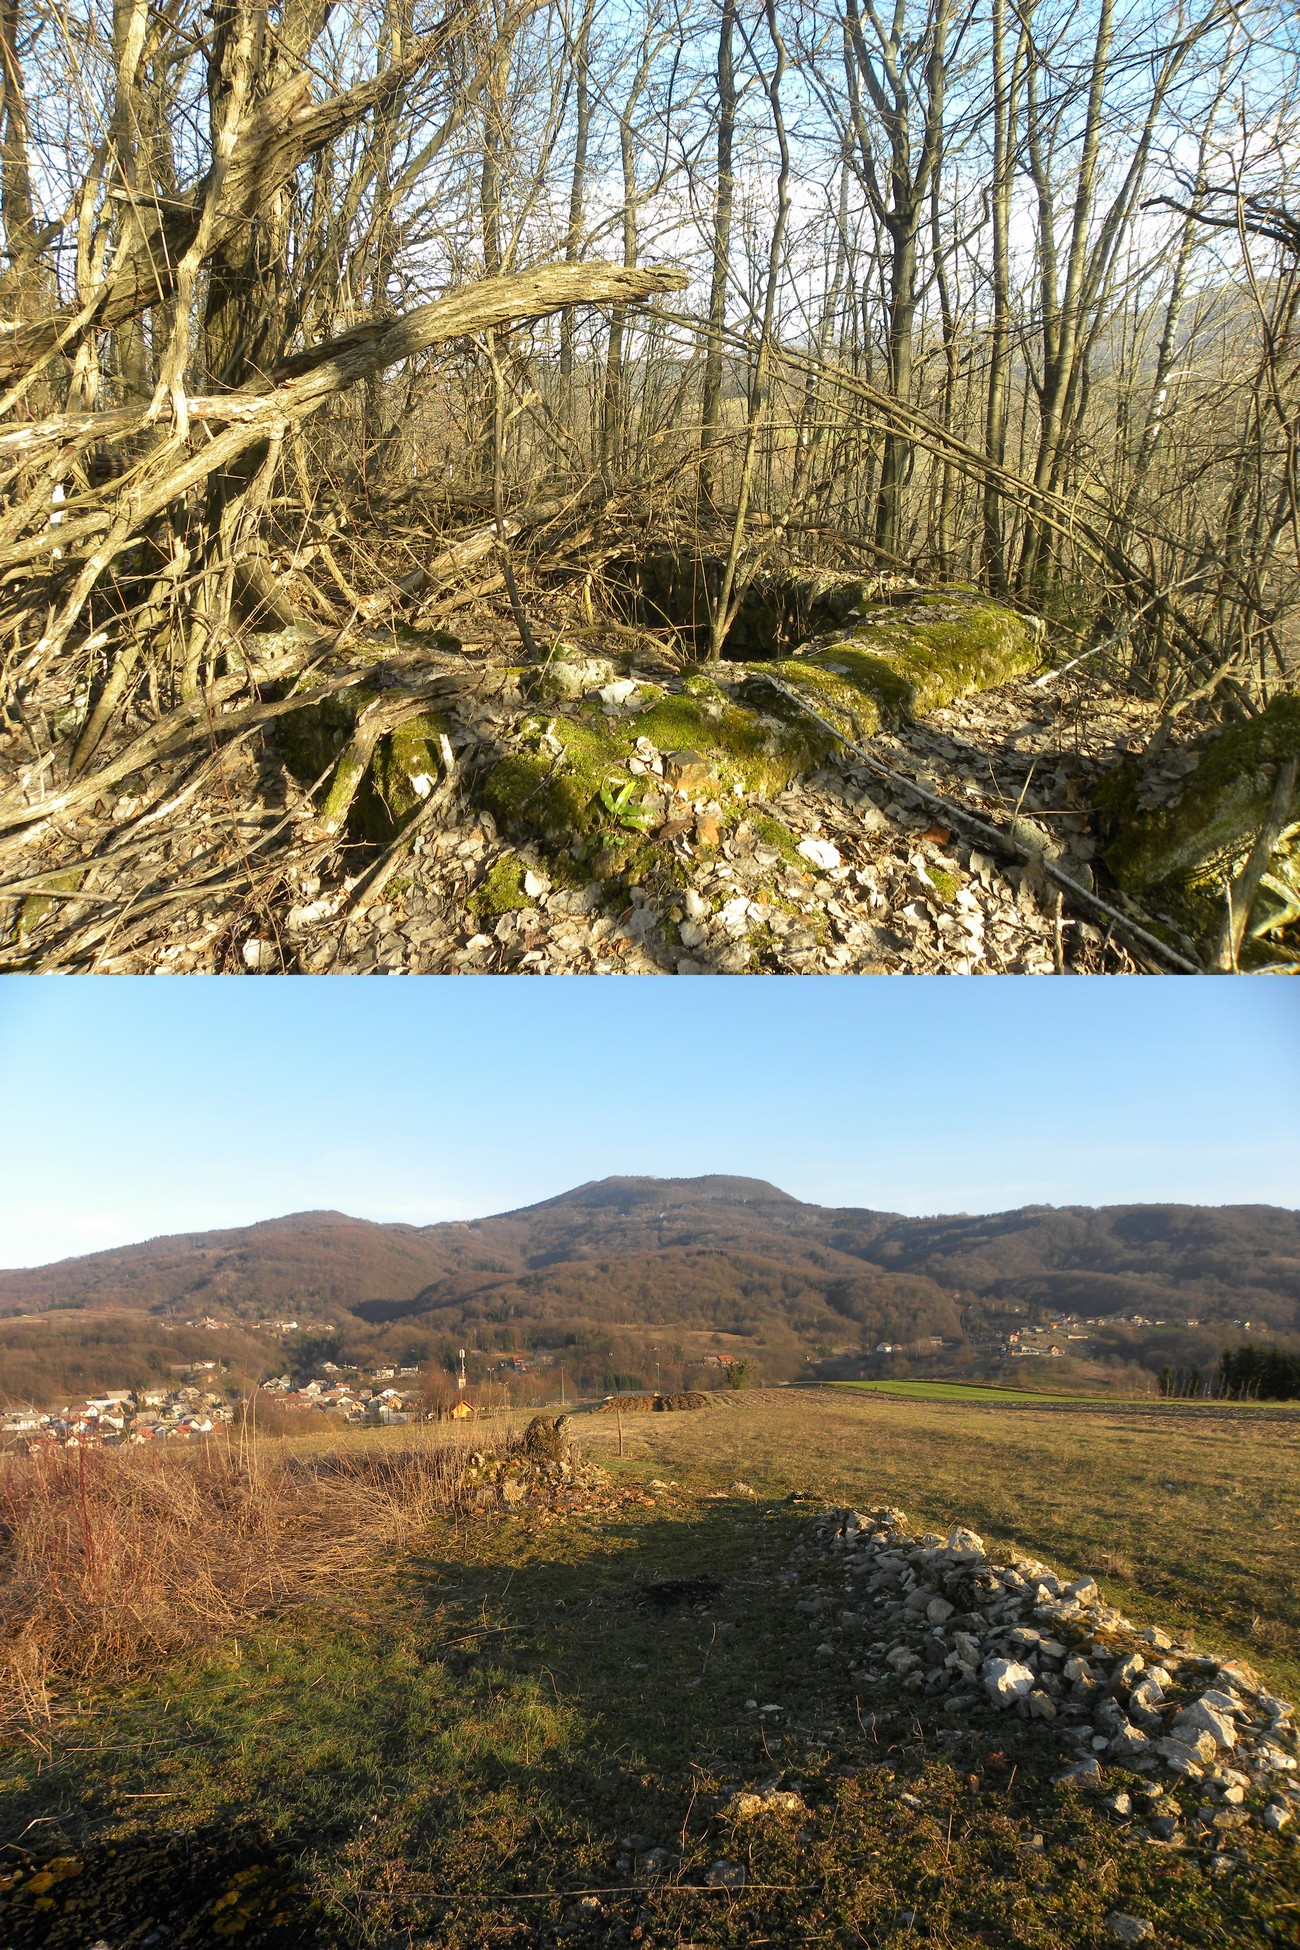 Remains of built bunkers on the Rutovca Hill and in Gomile near the village of Gabrje. Visible in the background of the below photograph are the Gorjanci Hills with the hill Trdinov vrh. Author: Blaž Štangelj.